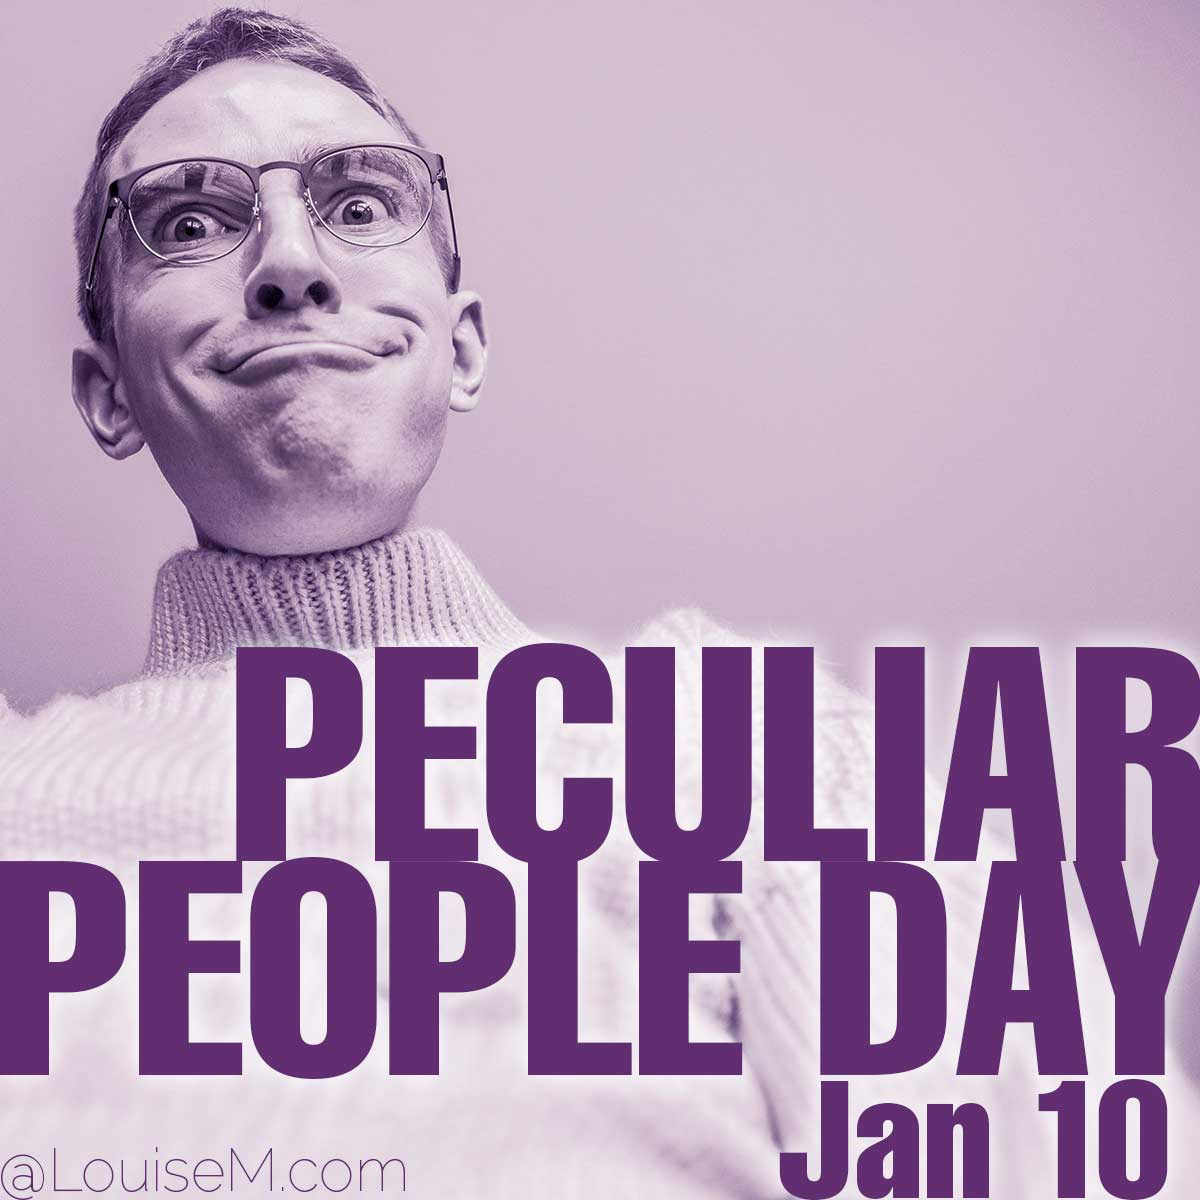 Peculiar People Day text on photo of weird man.